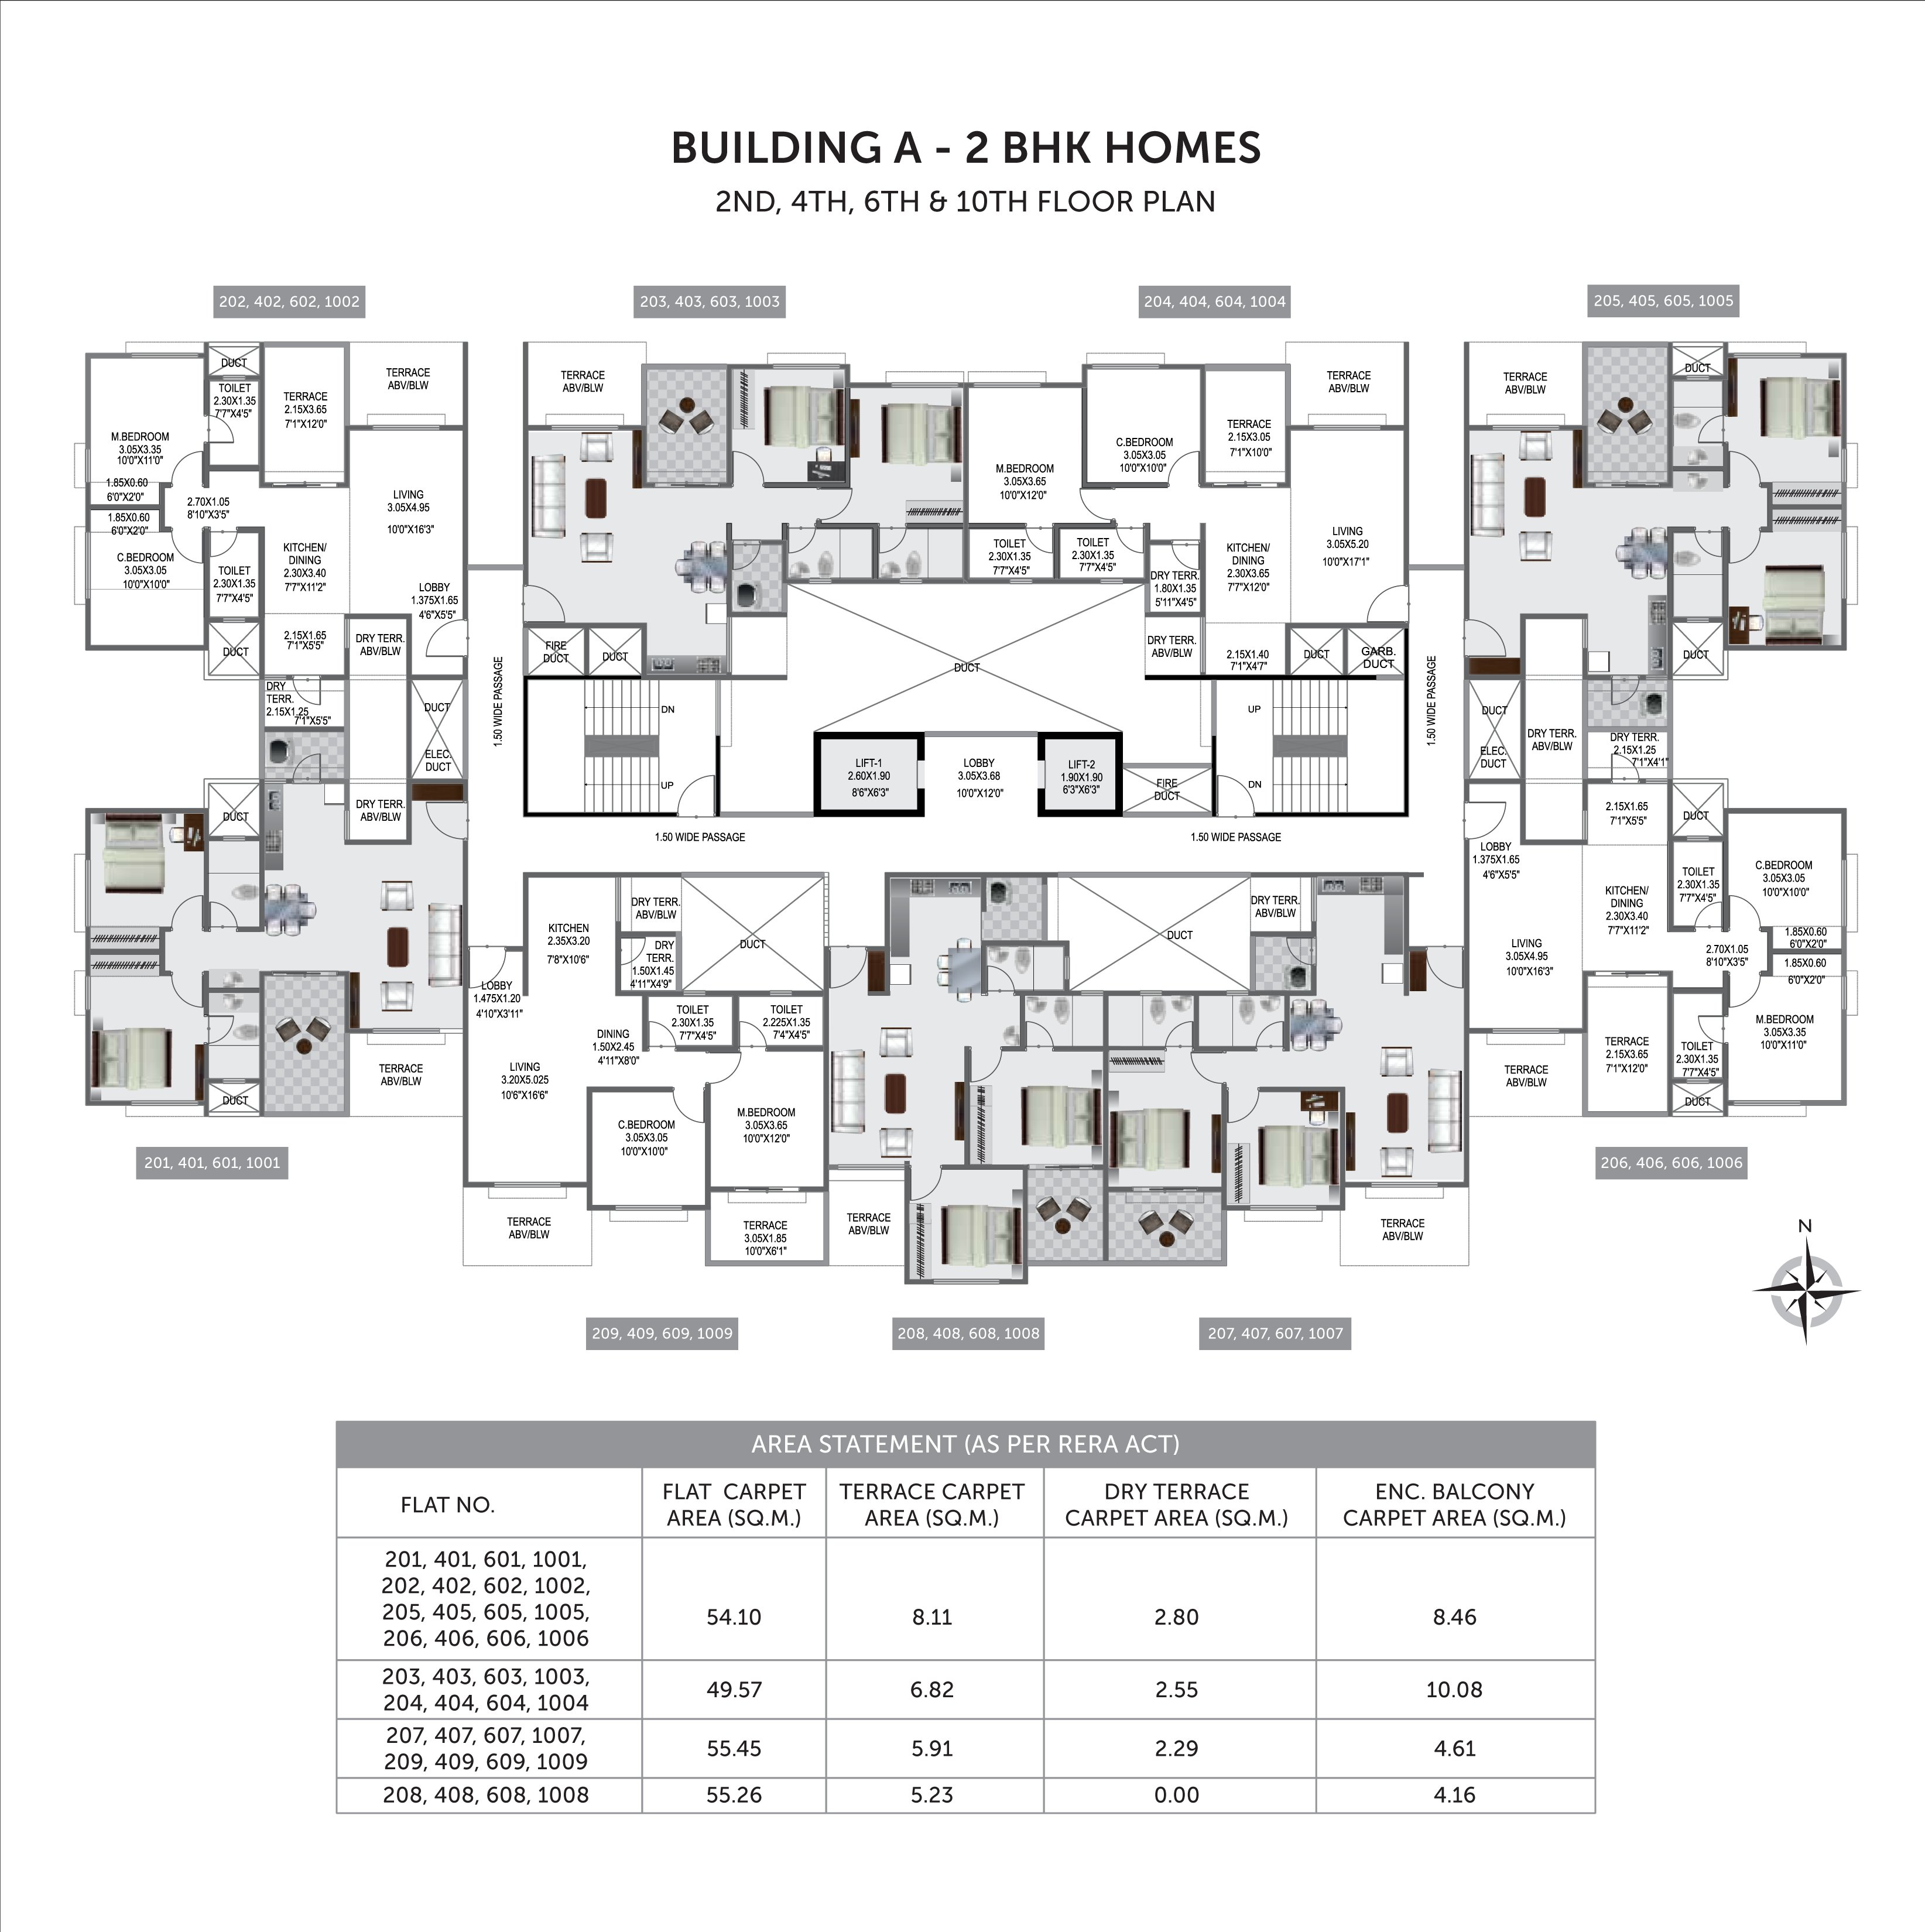 Pristine Prolife 3_Building A  - 2ND, 4TH, 6TH & 10TH FLOOR PLAN